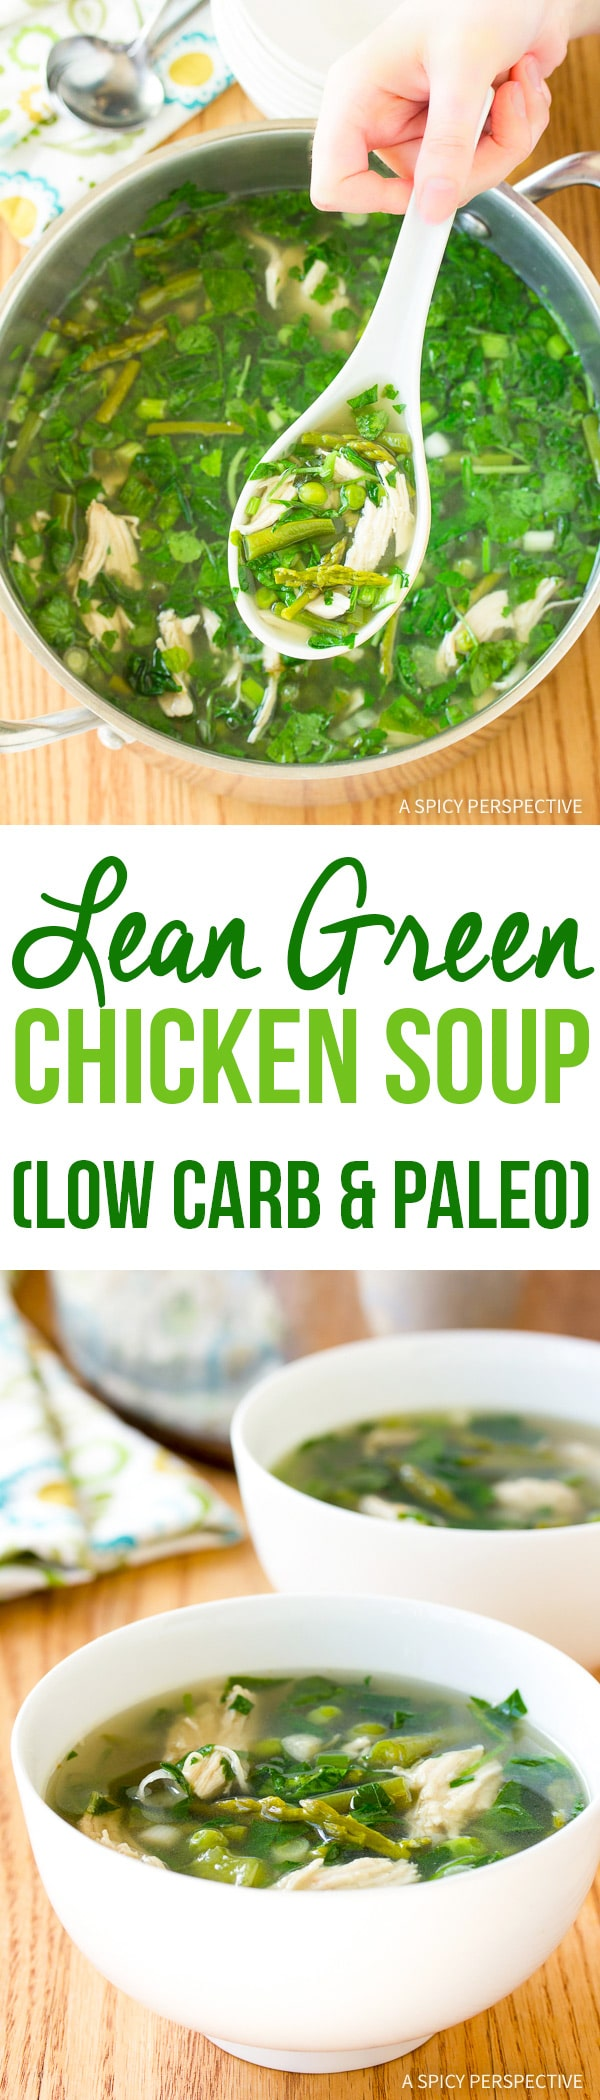 Healthy Lean Green Chicken Soup Recipe (Gluten Free, Dairy Free, Low Carb & Paleo!)